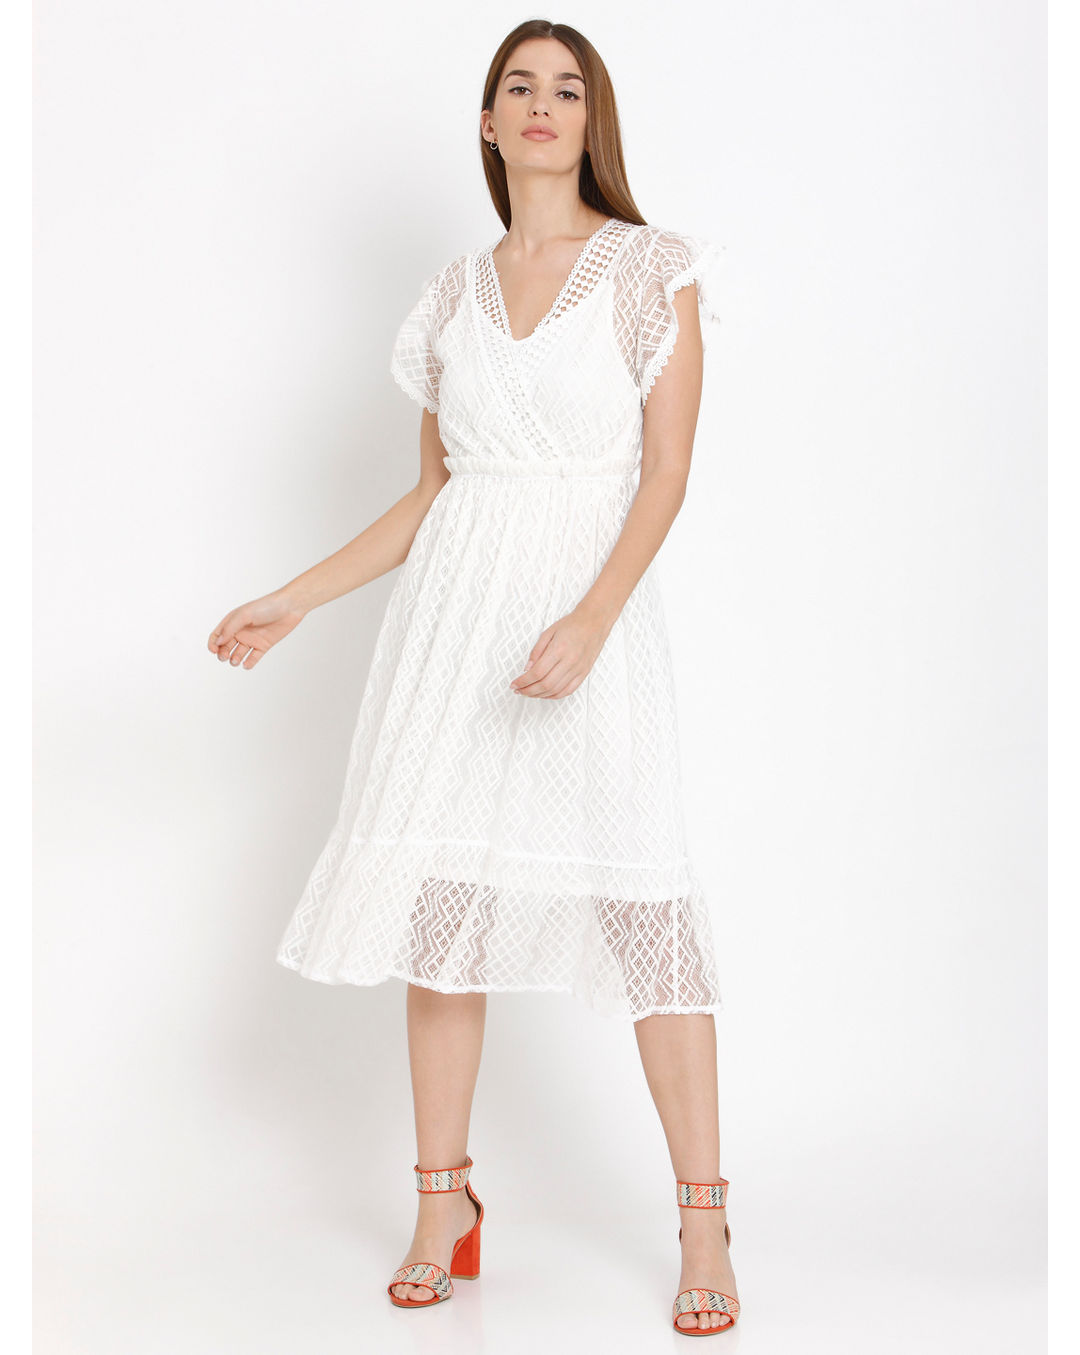 ac4cd6ac35675 Buy Vero Moda White Cut Work Lace Midi Dress Online | Vero Moda